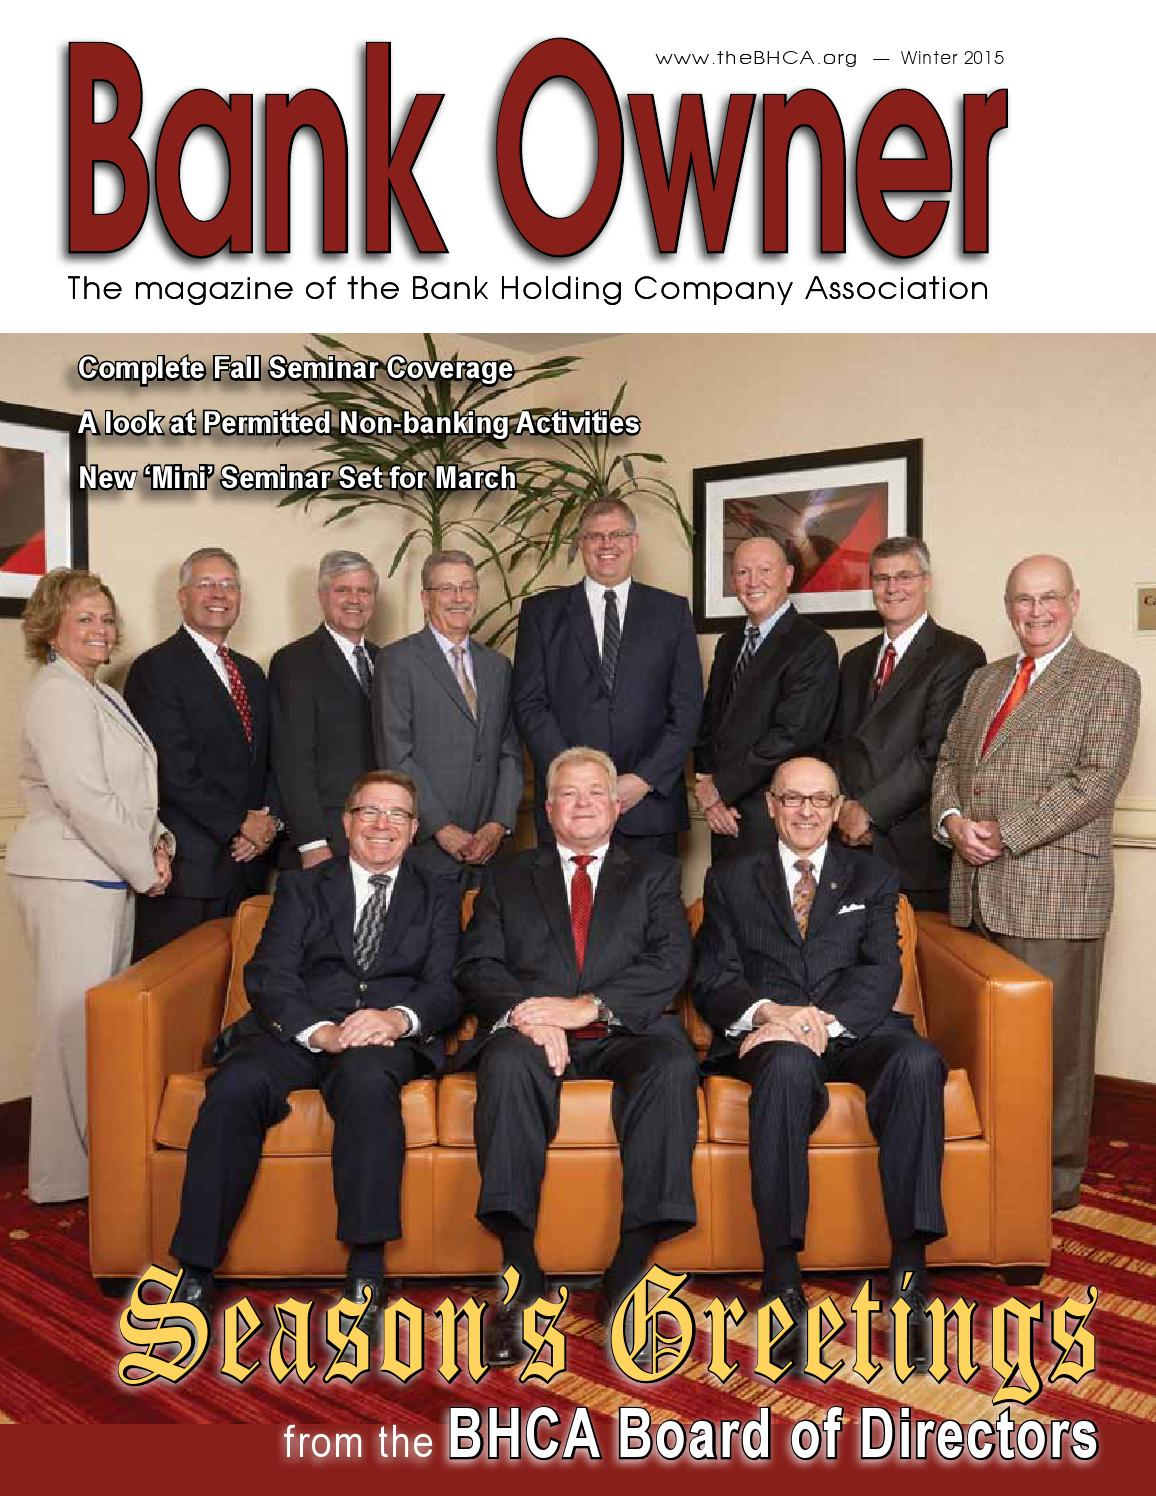 bank owner 4th quarter 2015tom bengtson - issuu